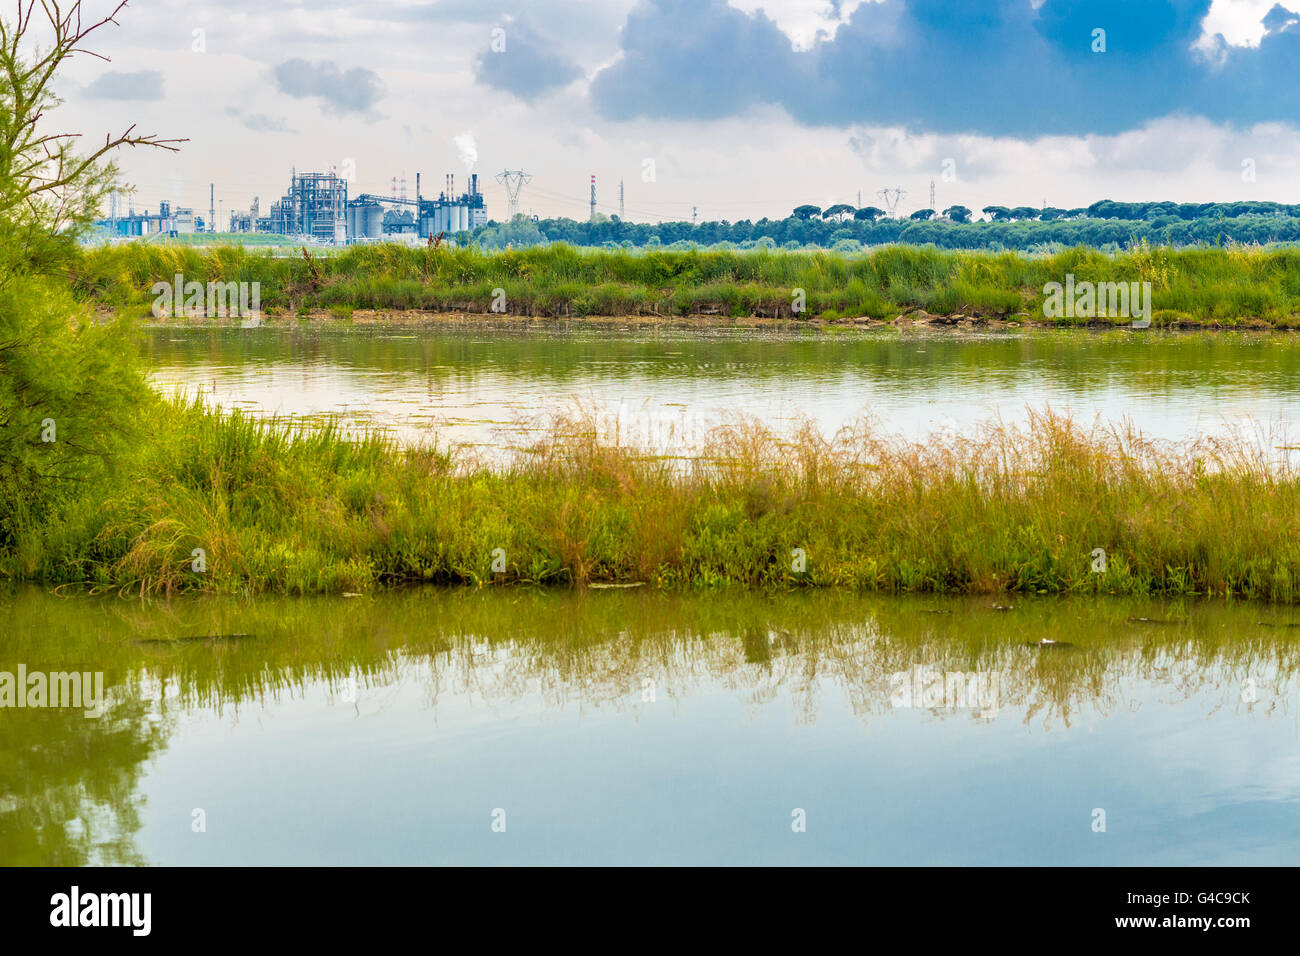 brackish lagoon with industries in the background in Italy Stock Photo